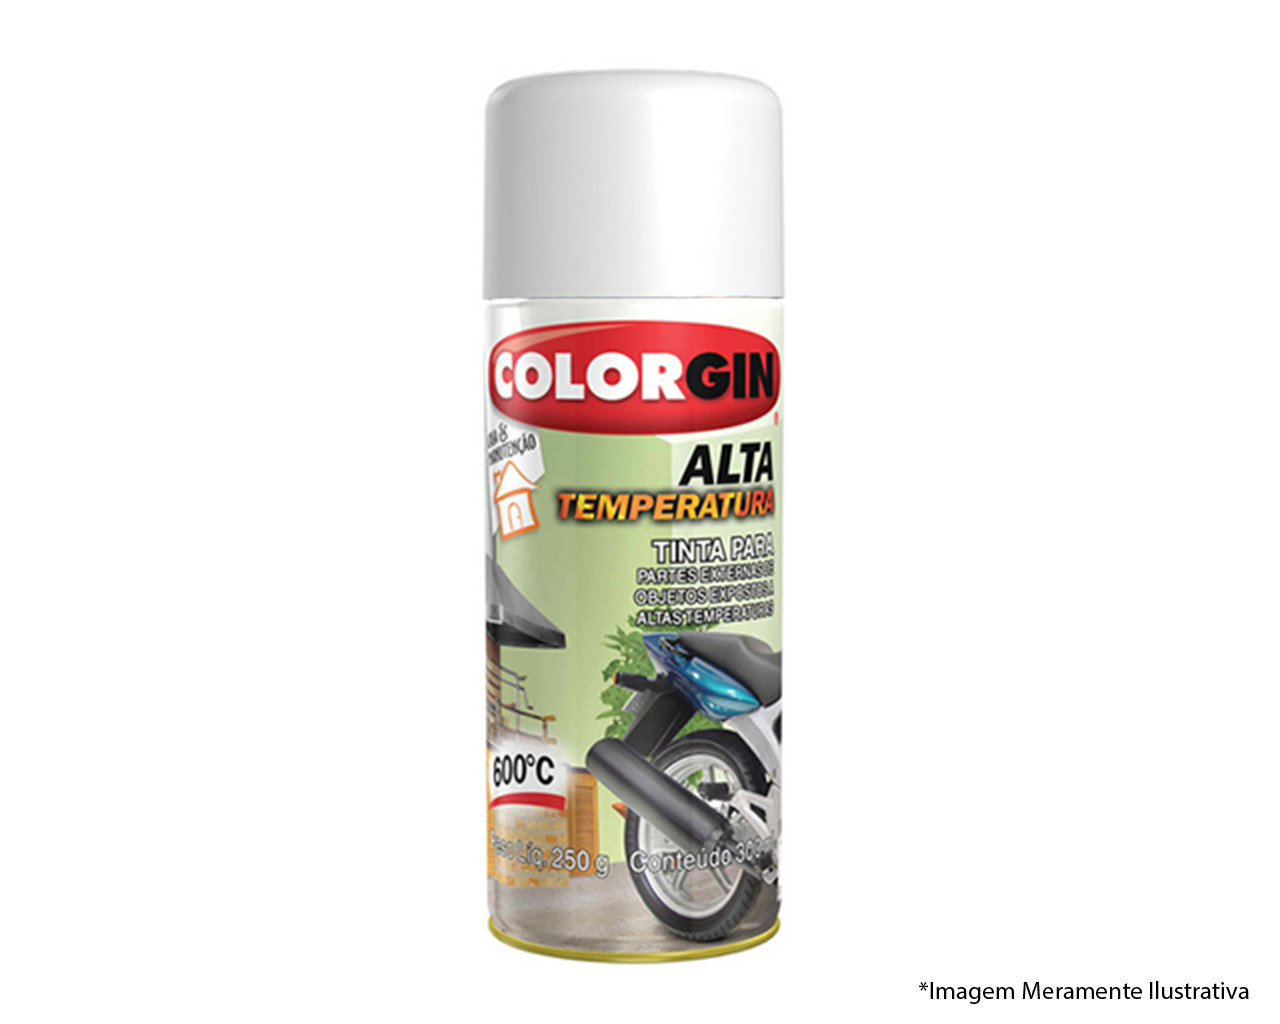 TINTA SPRAY ALTA TEMPERATURA BRANCO 600